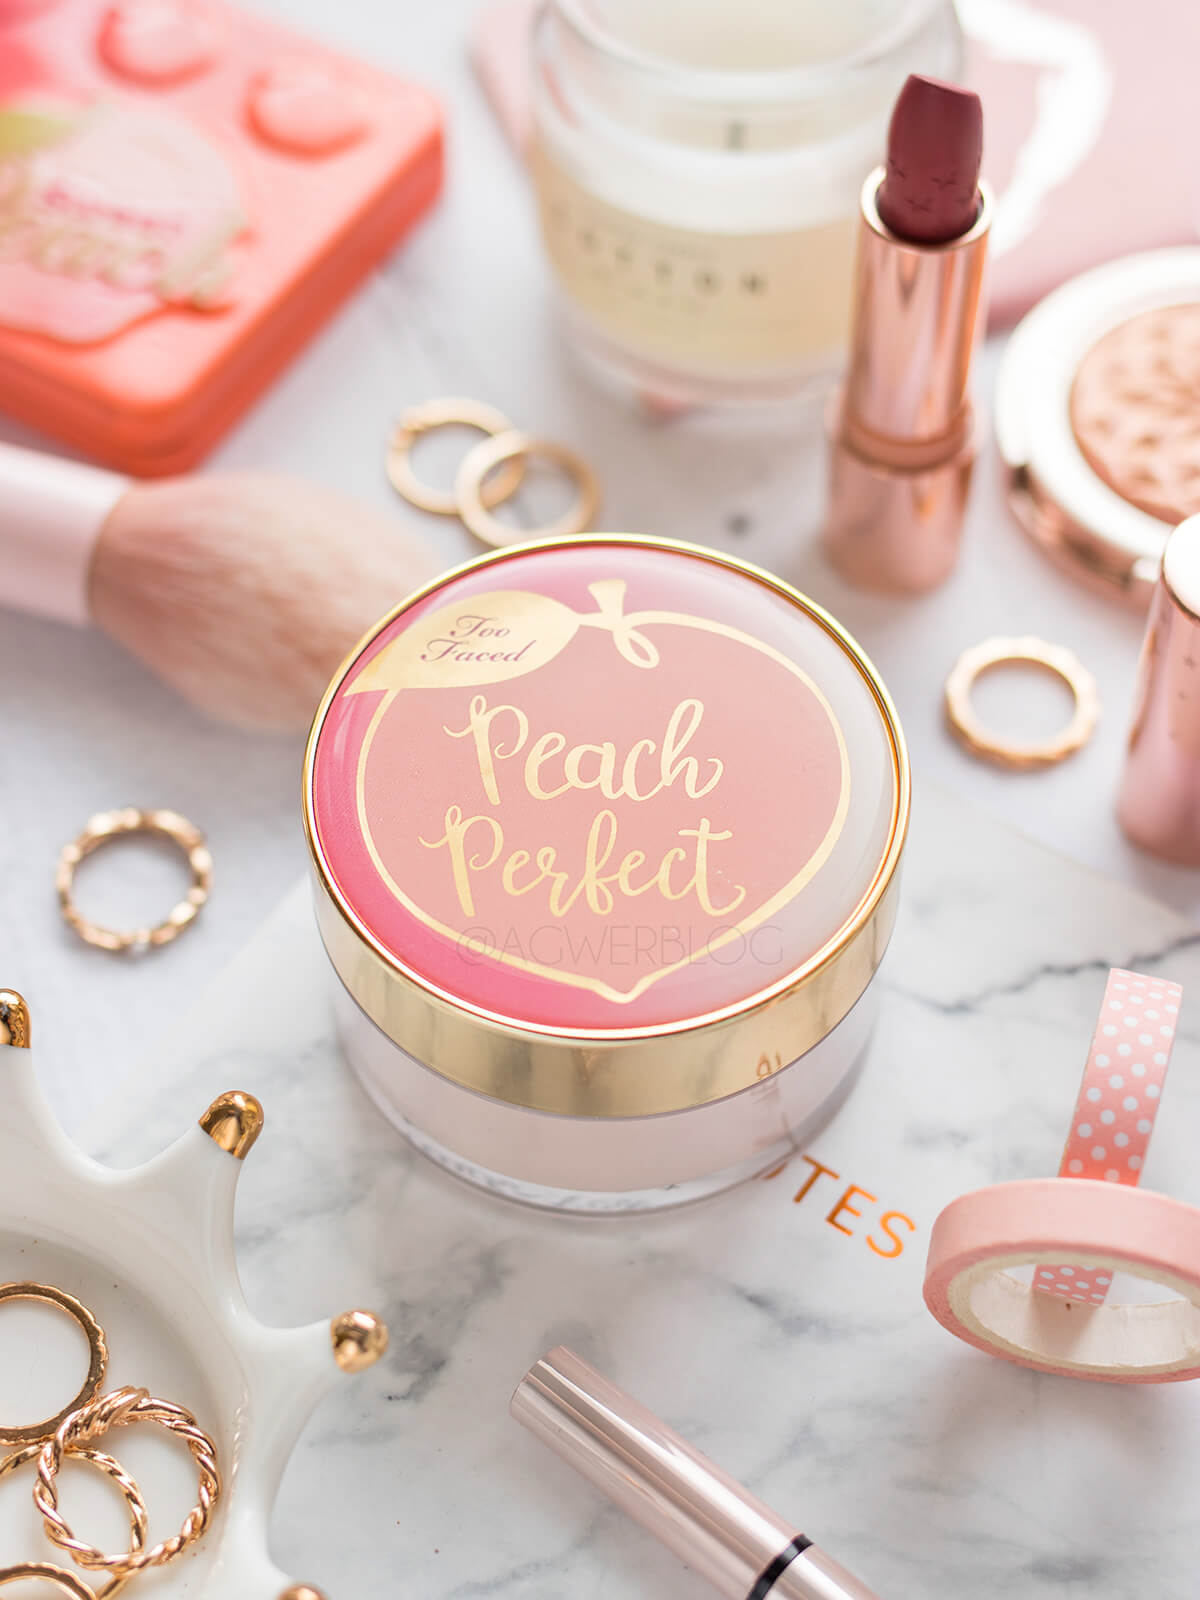 puder too faced peach perfect